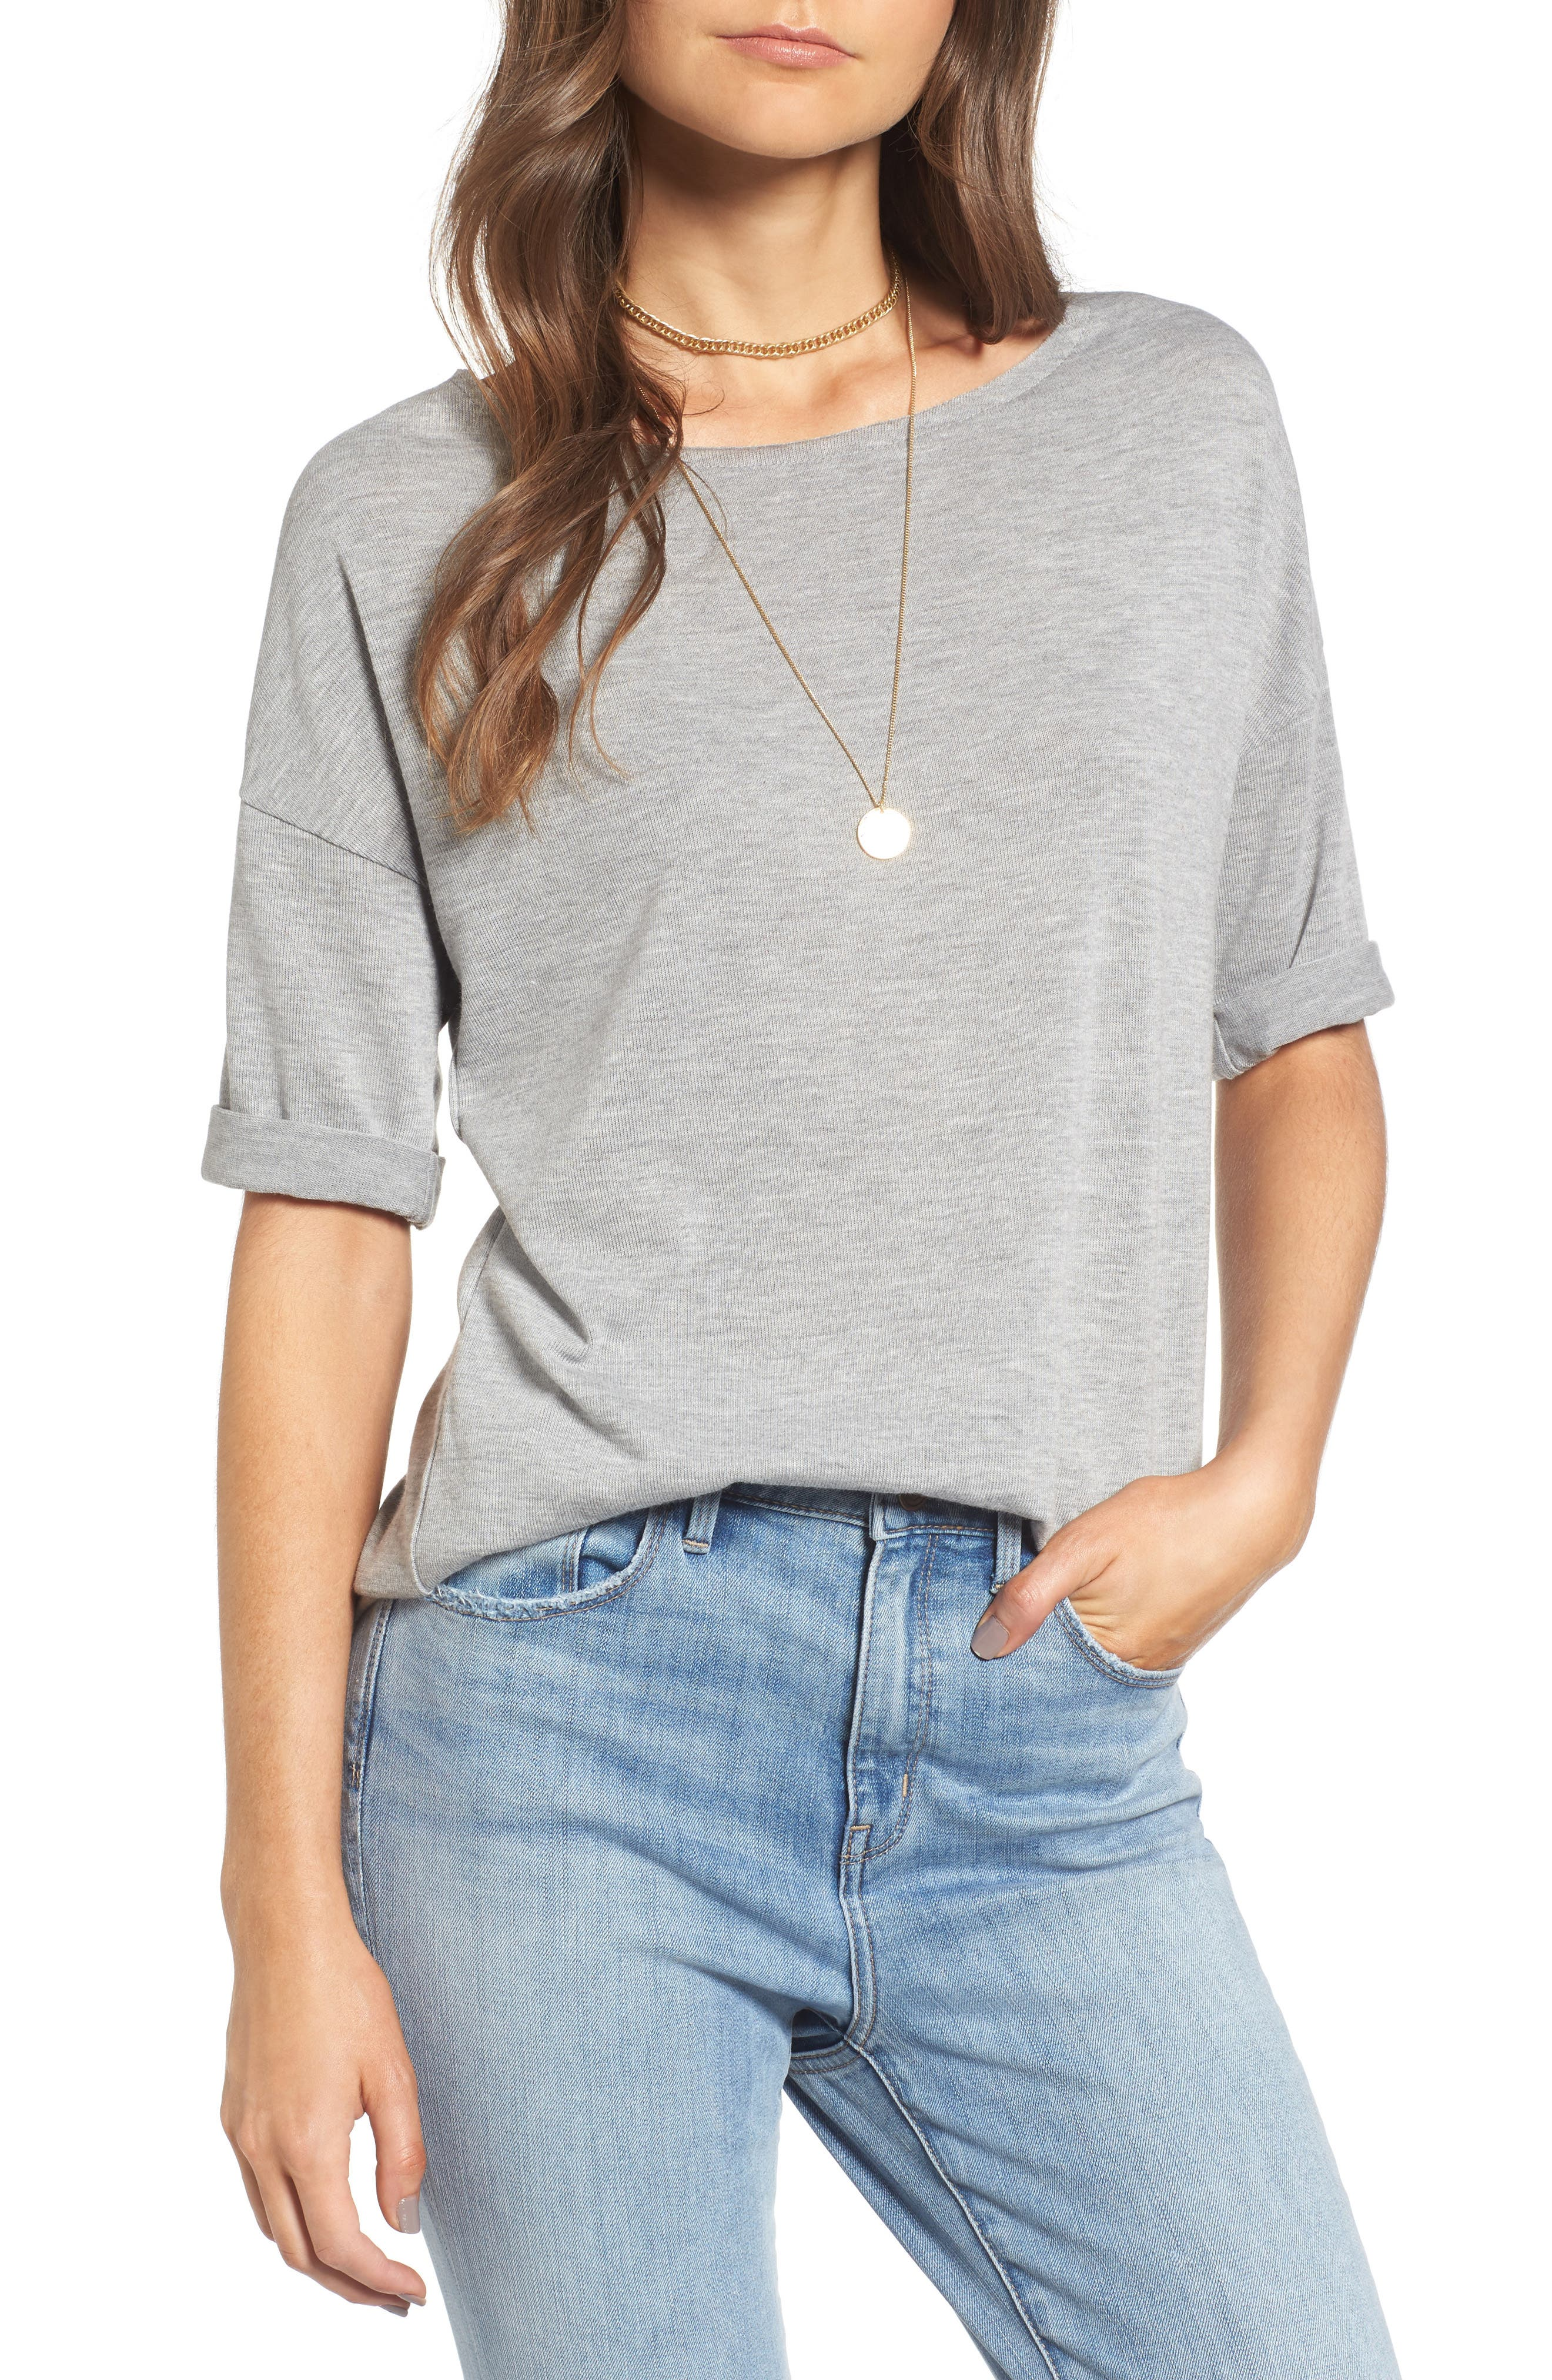 x Something Navy Easy Tee,                         Main,                         color, Grey Heather